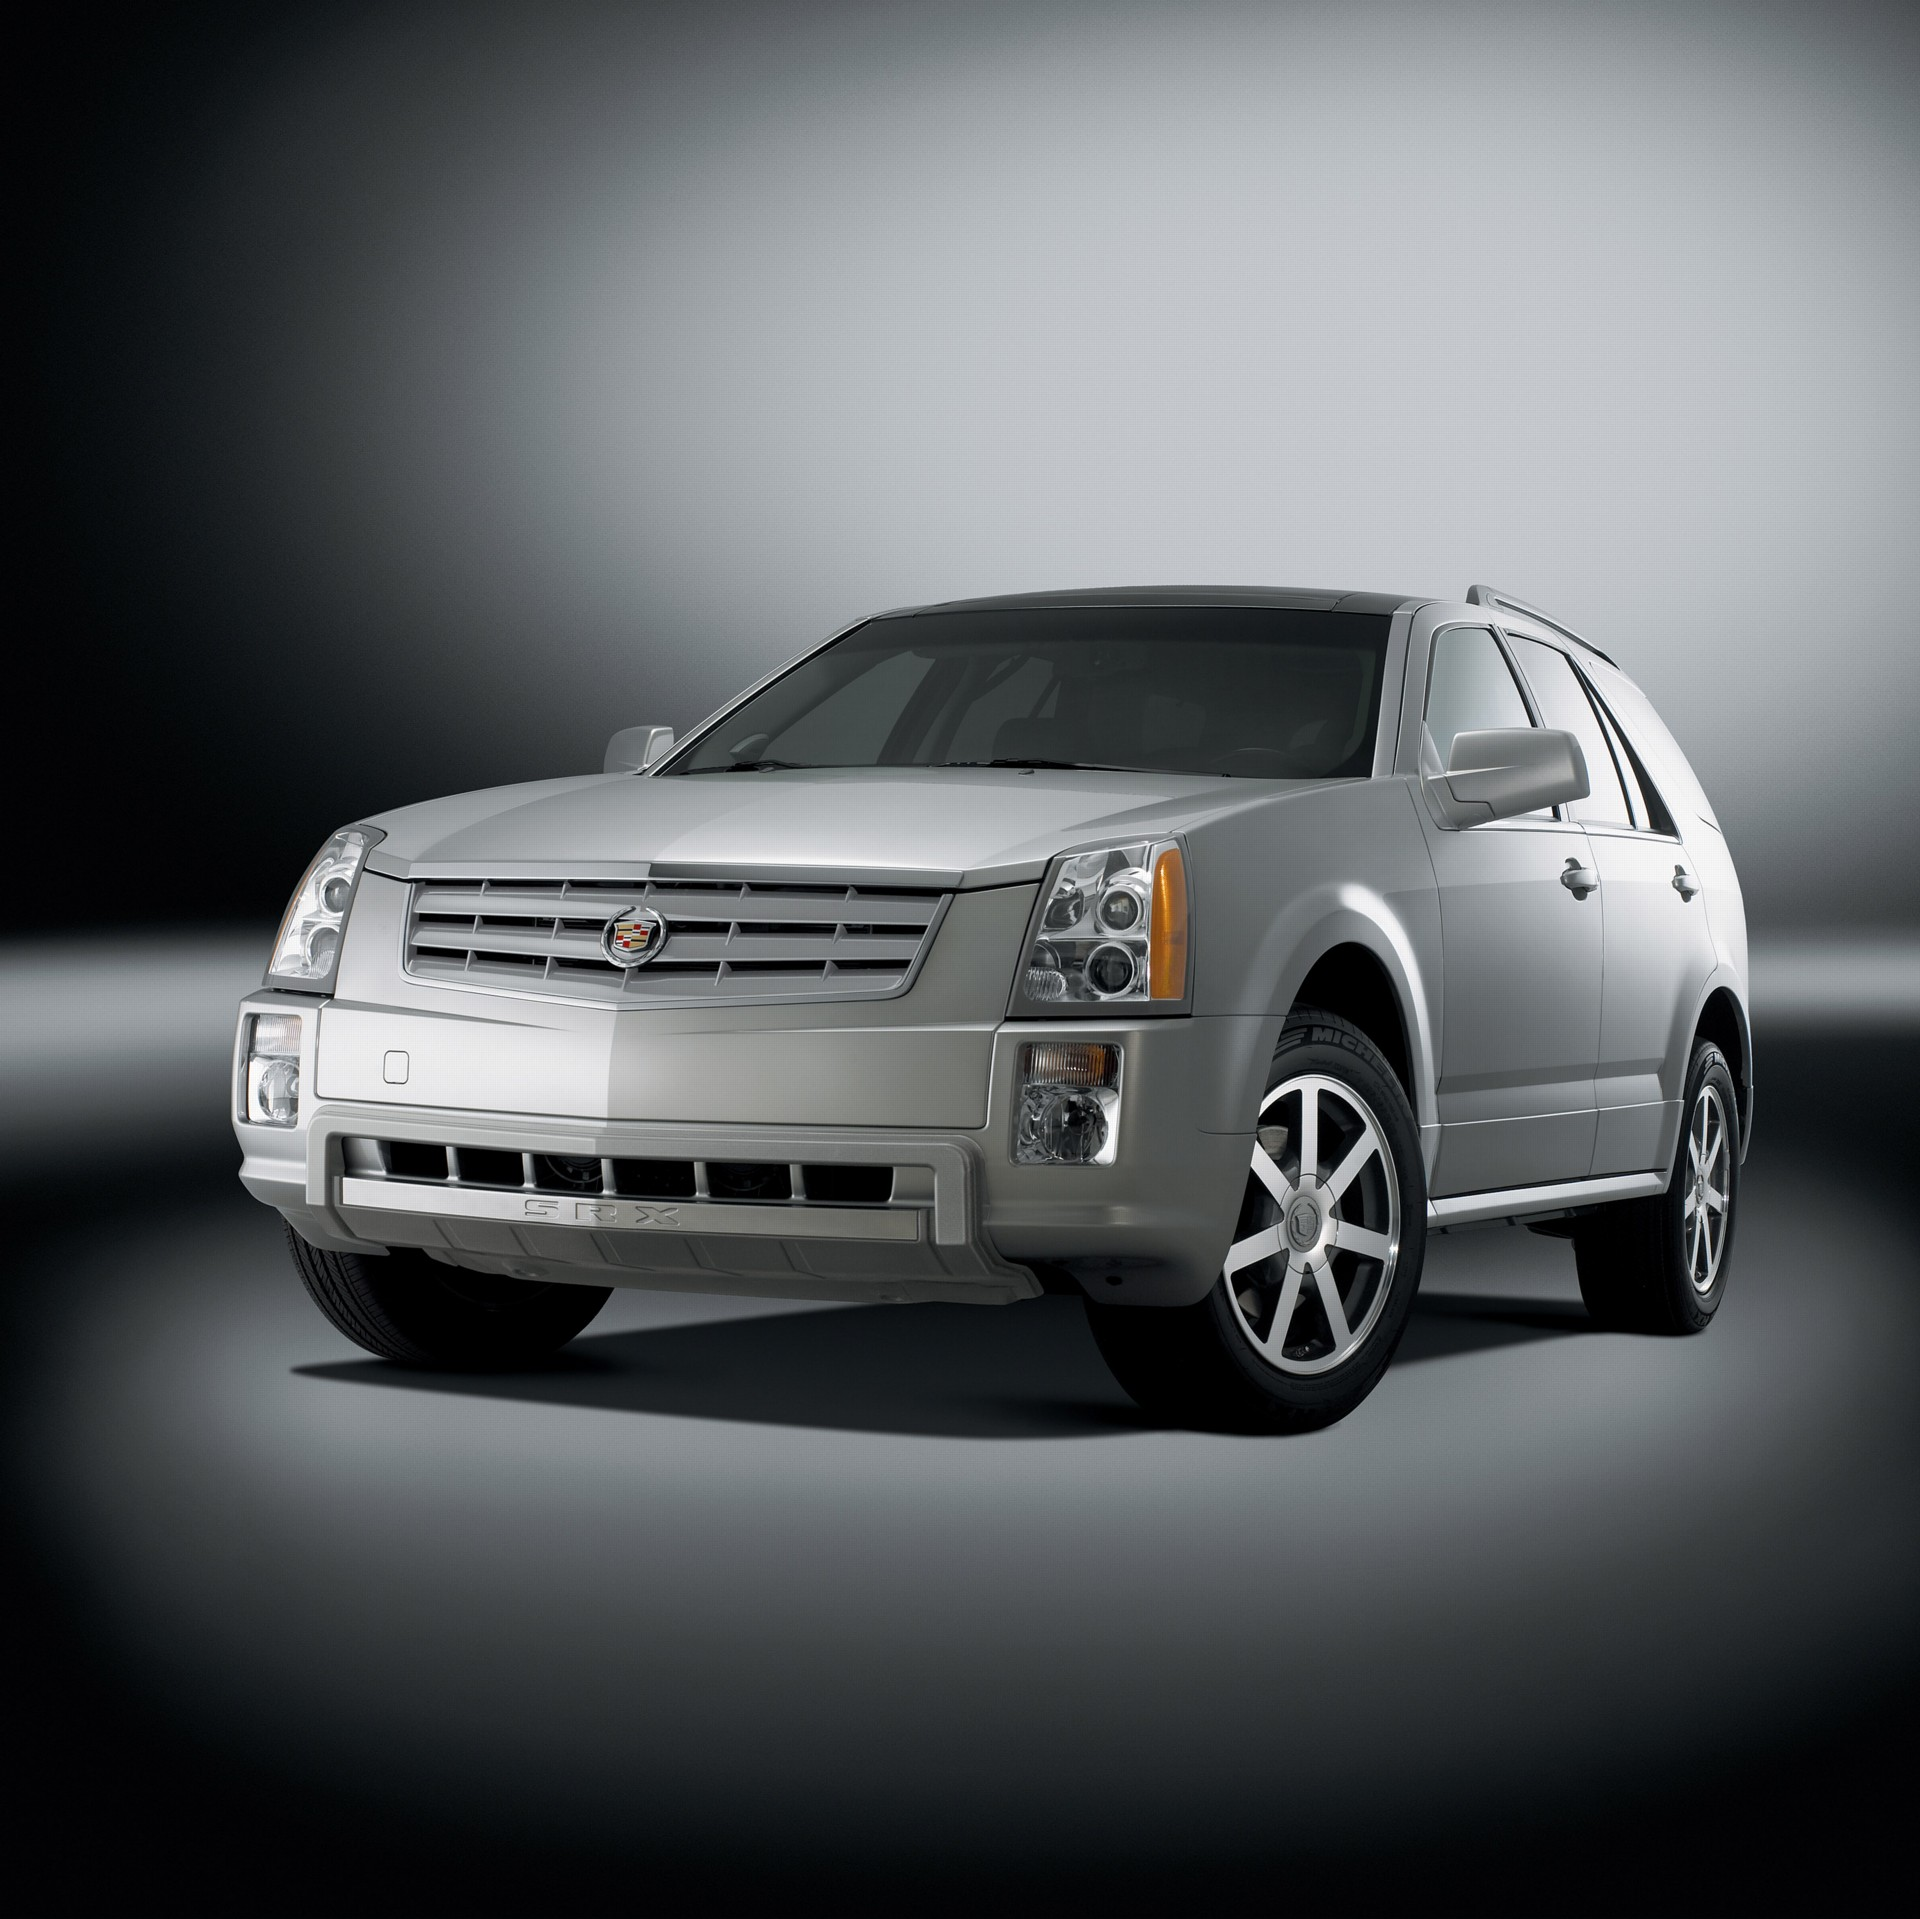 Cadillac Srx: Auction Results And Data For 2007 Cadillac SRX